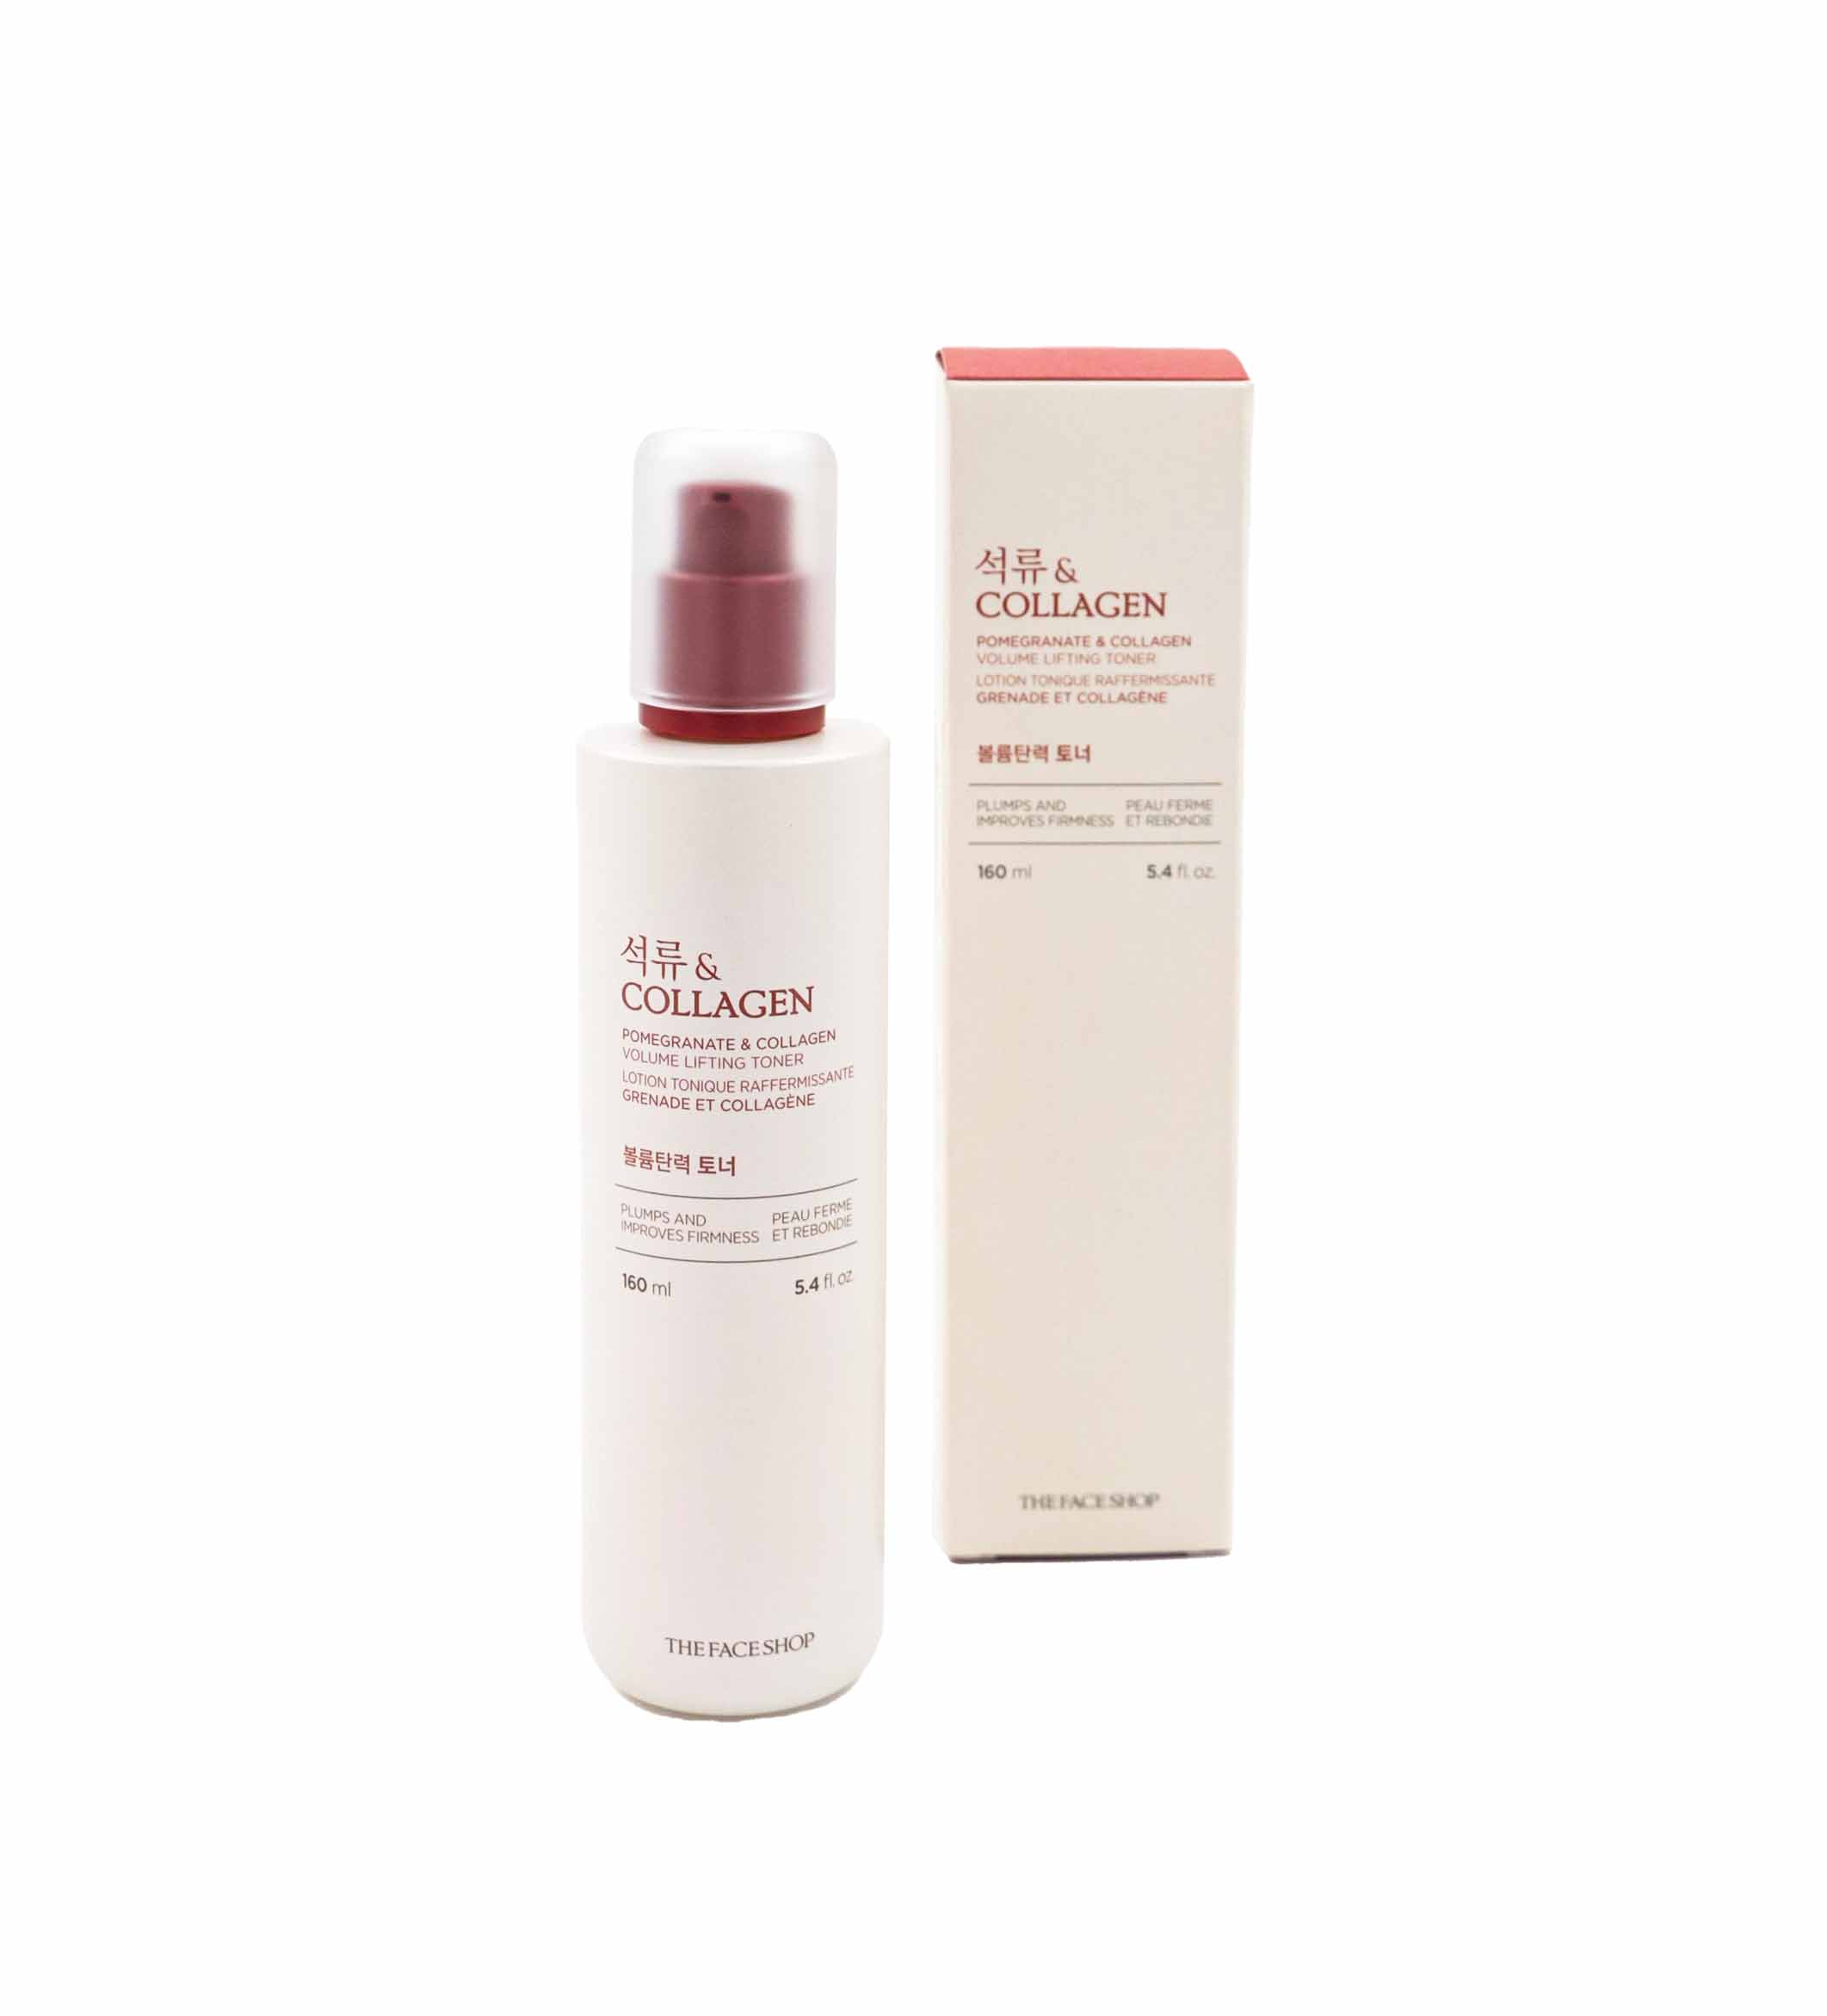 The Face Shop - Pomegranate and Collagen Volume Lifting Toner